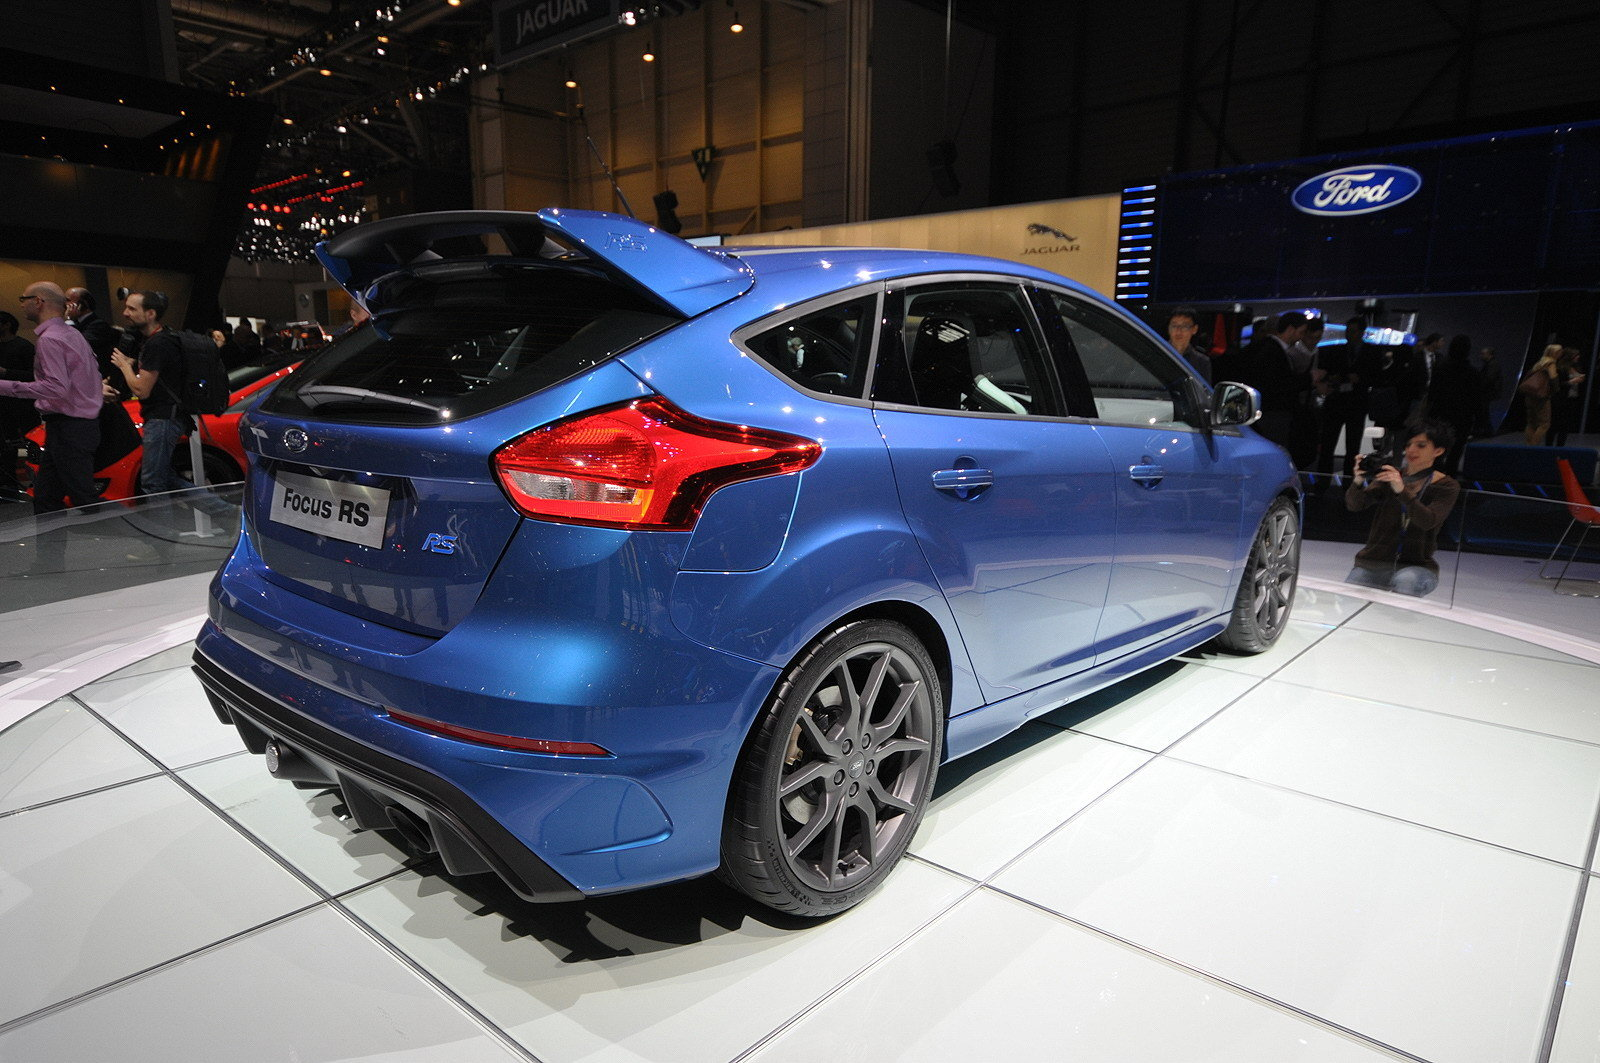 2016 ford focus rs picture 622211 car review top speed. Black Bedroom Furniture Sets. Home Design Ideas